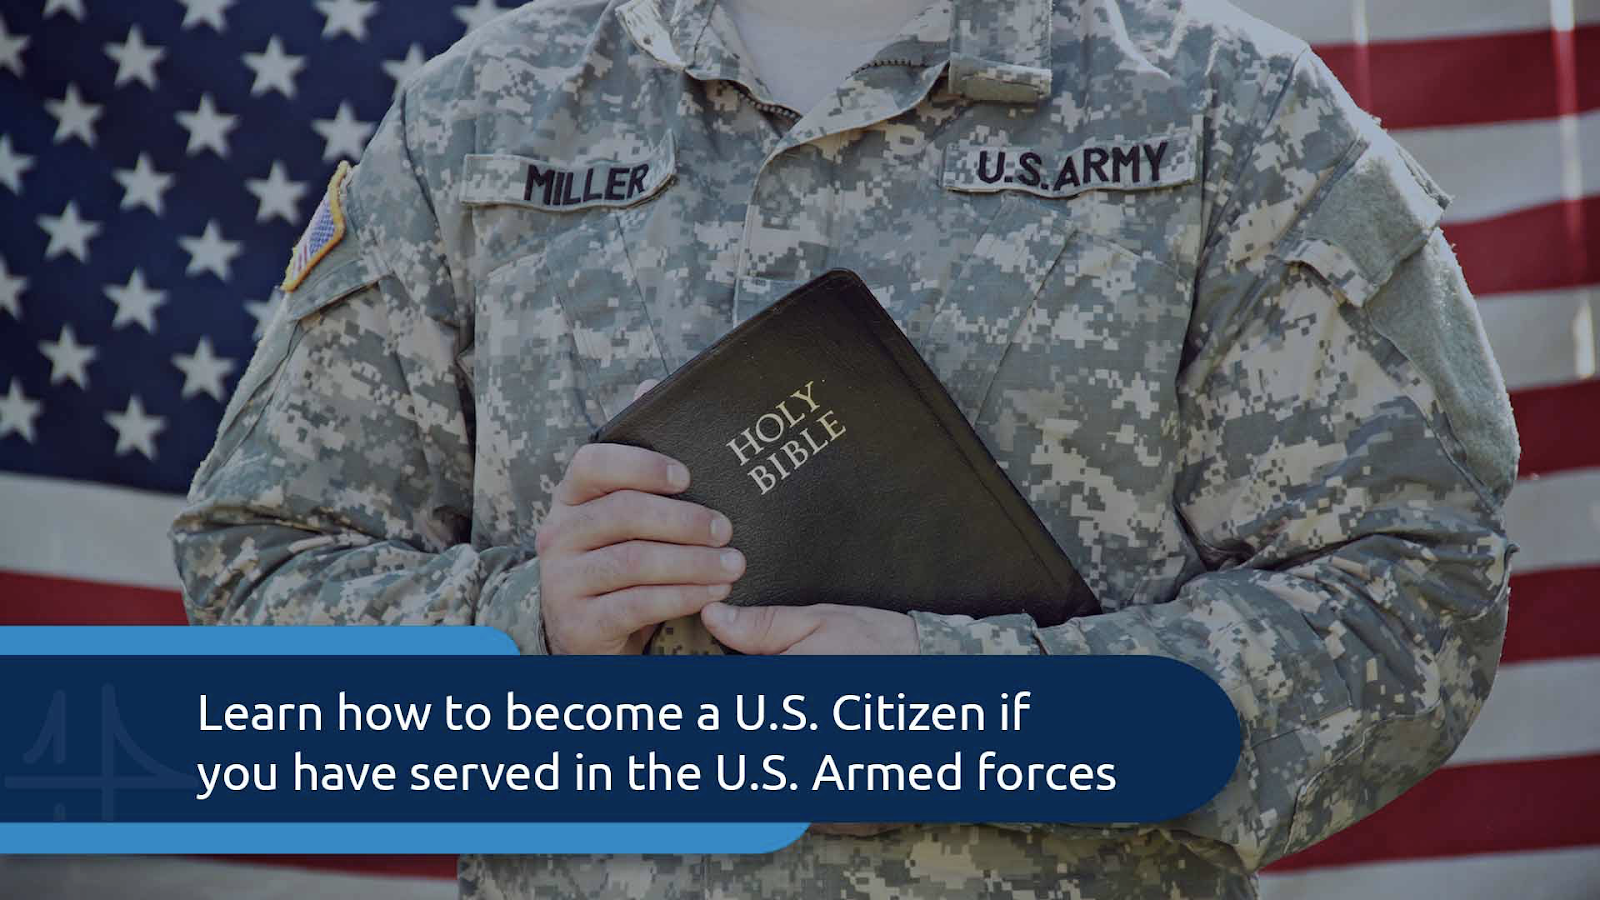 How do I apply for naturalization through military service?